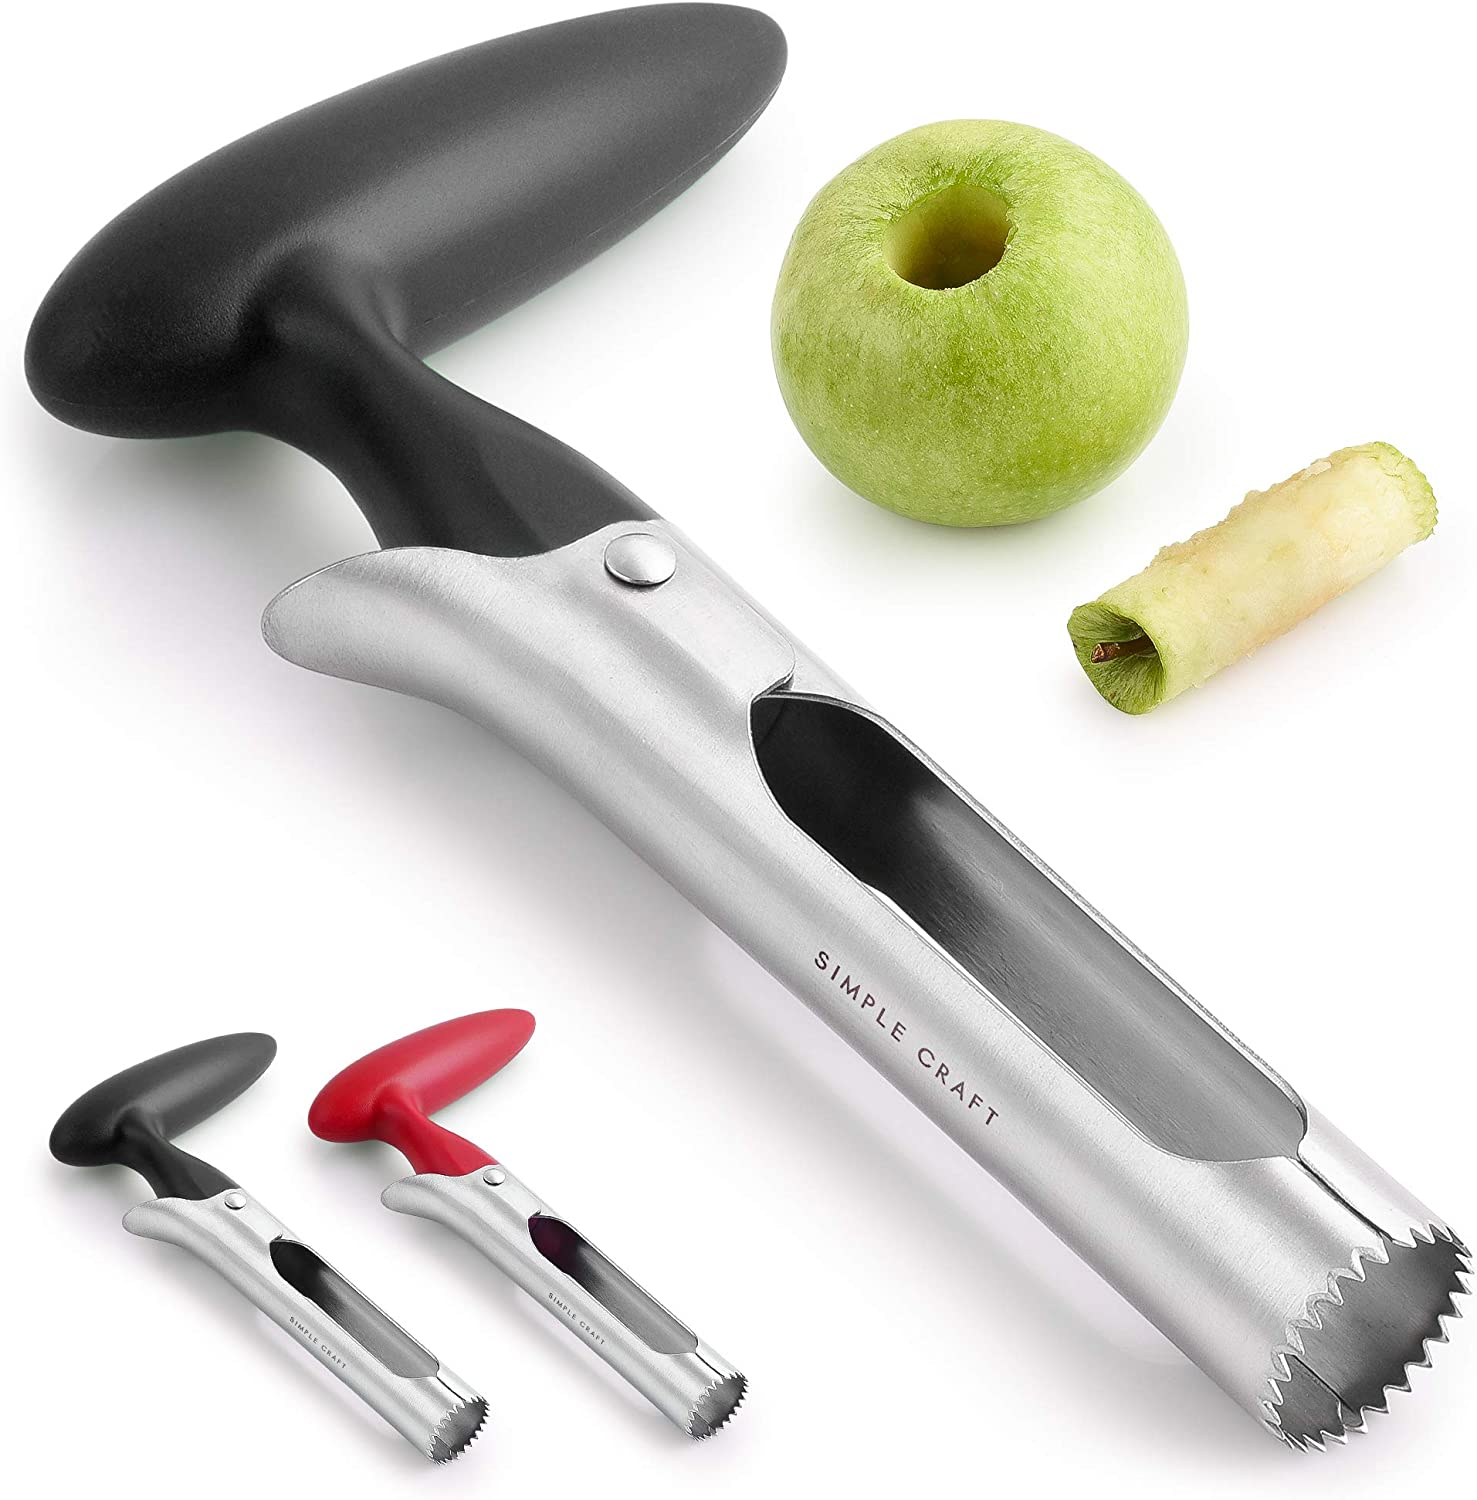 Simple Craft Apple Corer - Premium Stainless Steel Apple Corer Tool For Removing Cores & Pits - Sharp Serrated Core Remover For Apples & Pears (Black)